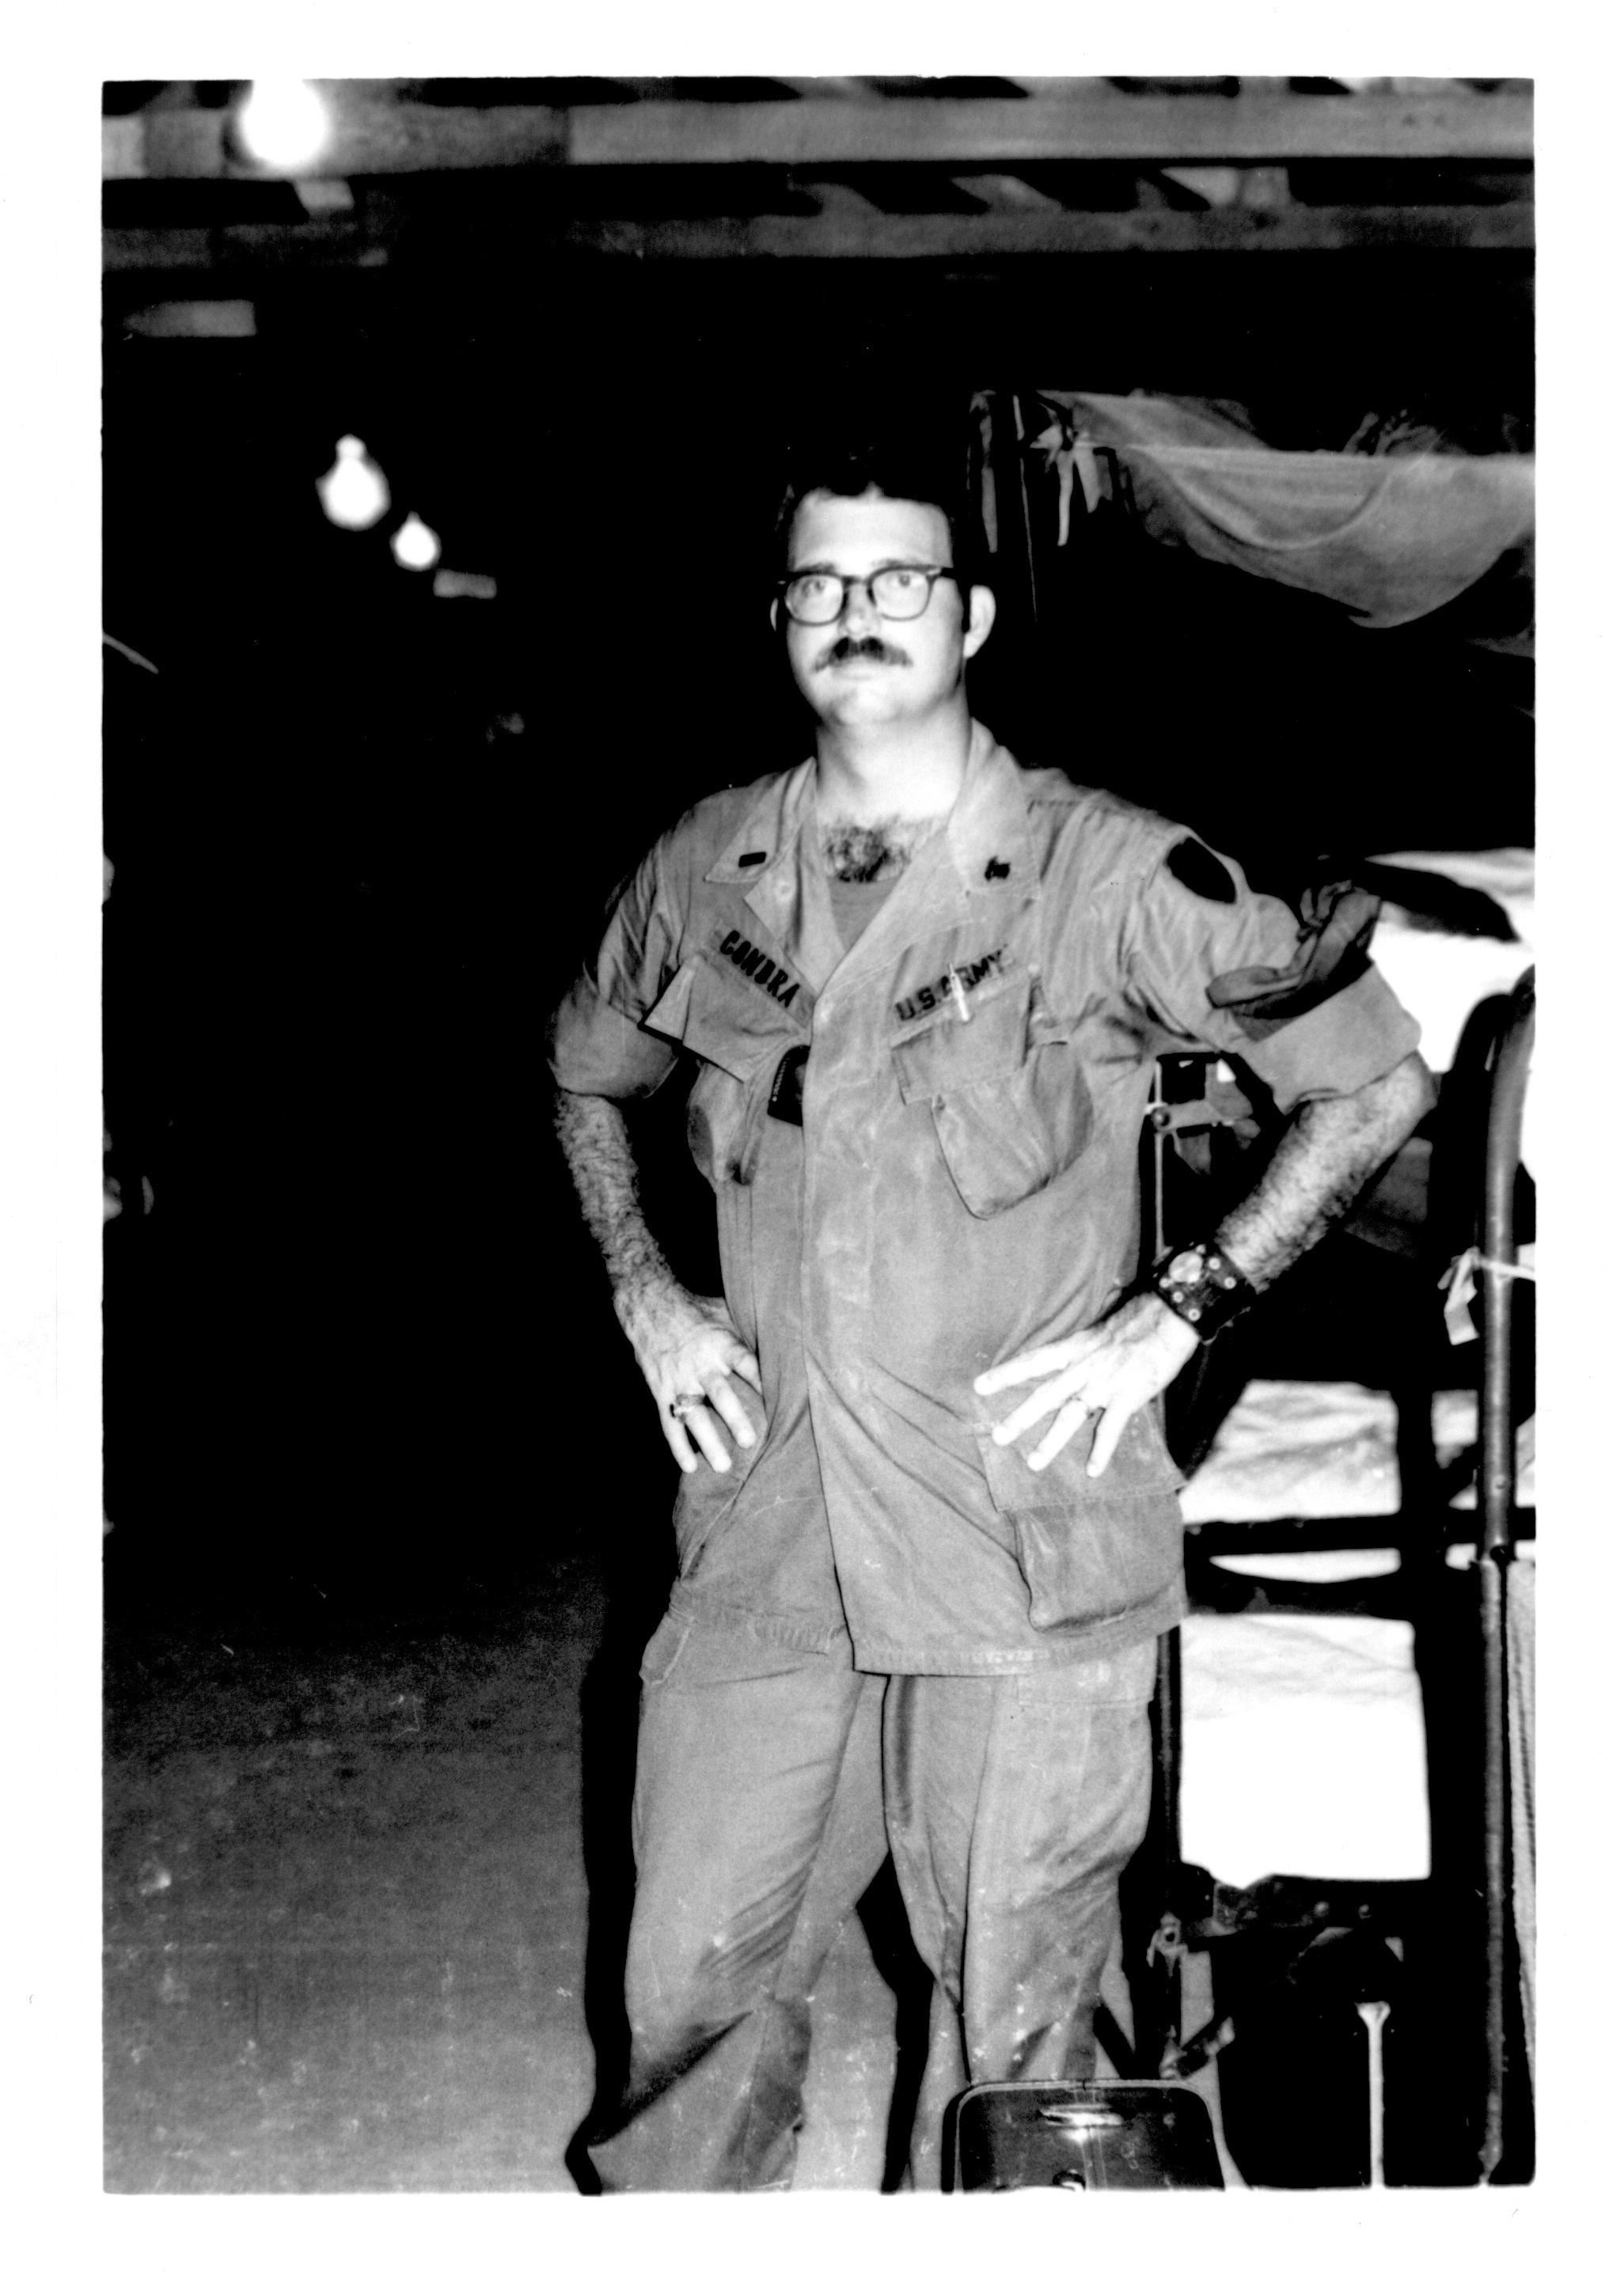 Gary Condra in barracks